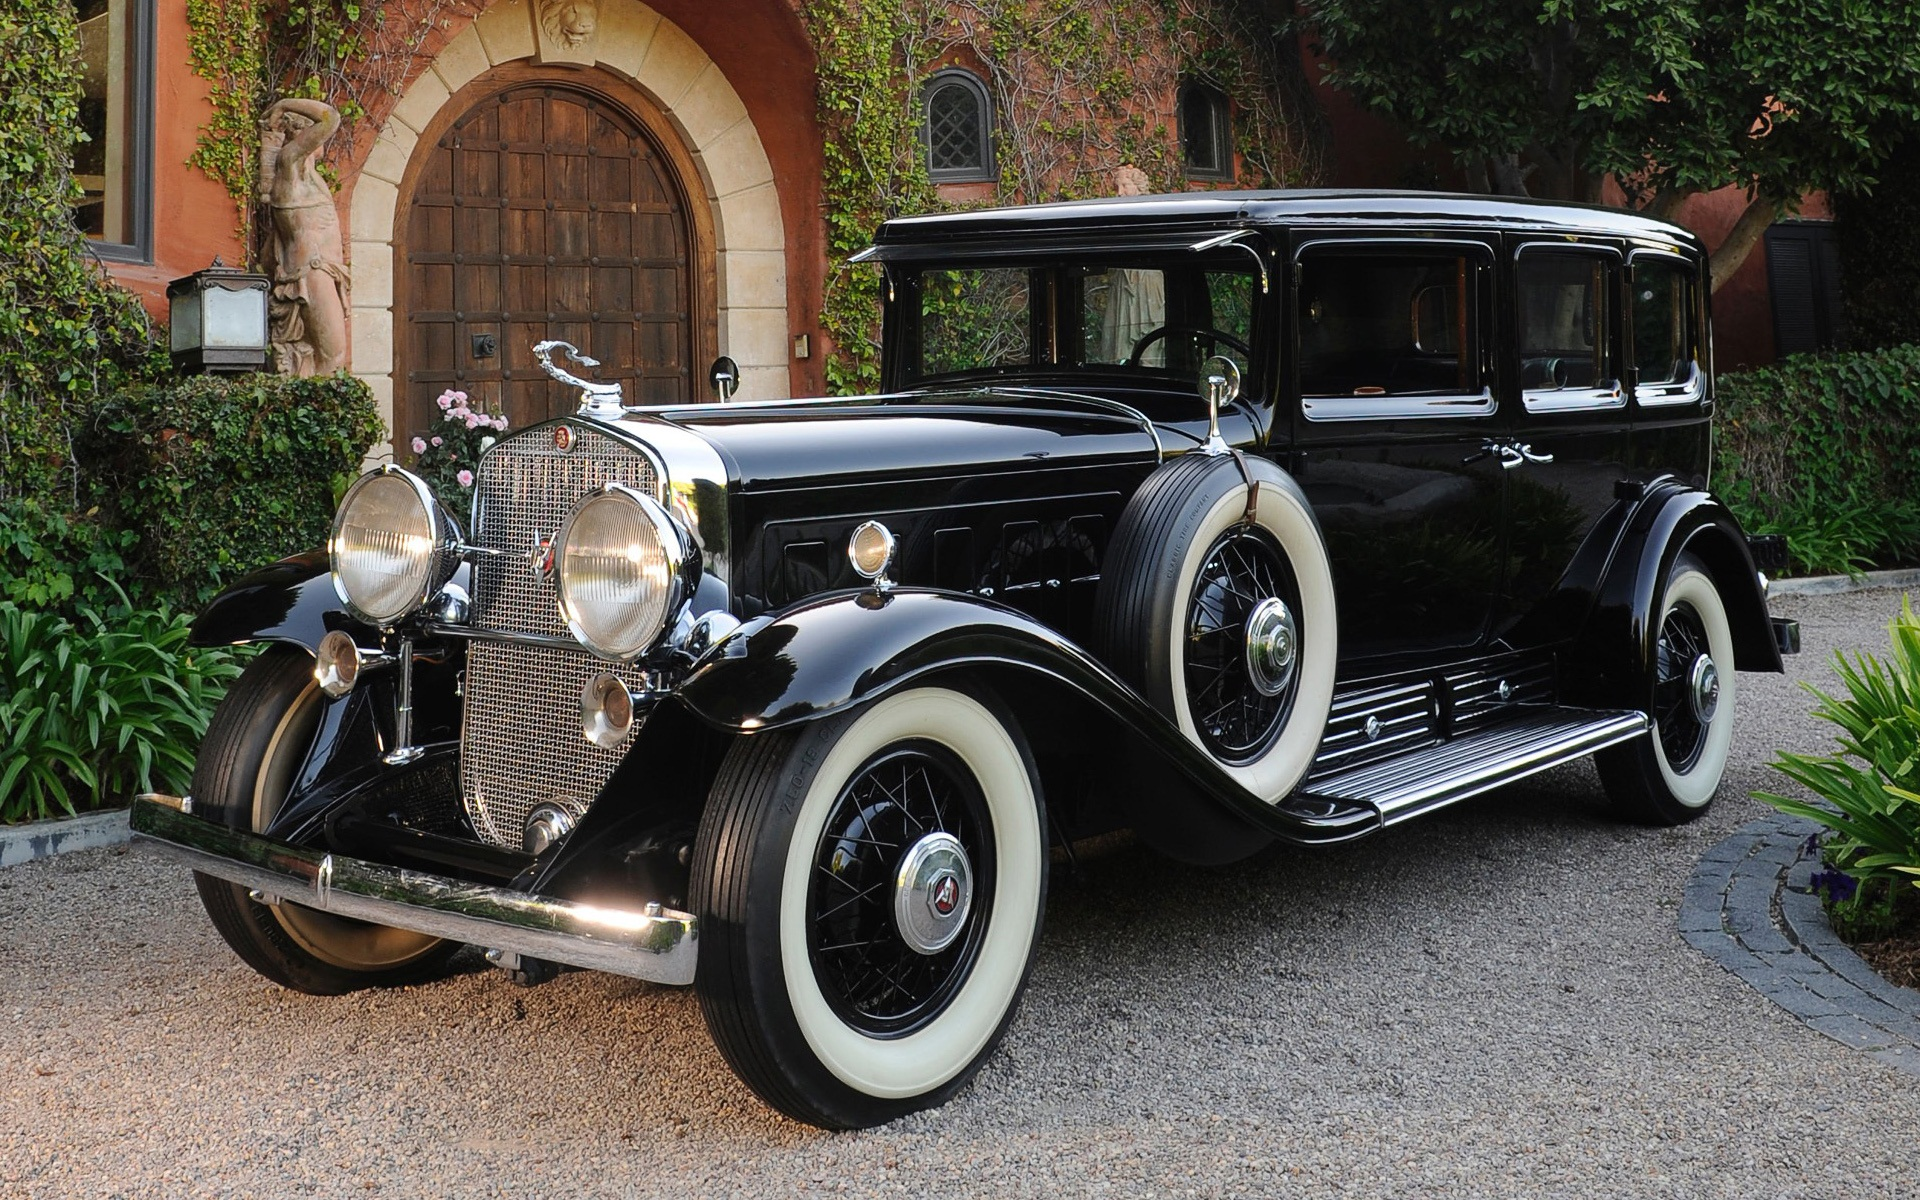 1930 Cadillac Model 452 V16 Backgrounds, Compatible - PC, Mobile, Gadgets| 1920x1200 px